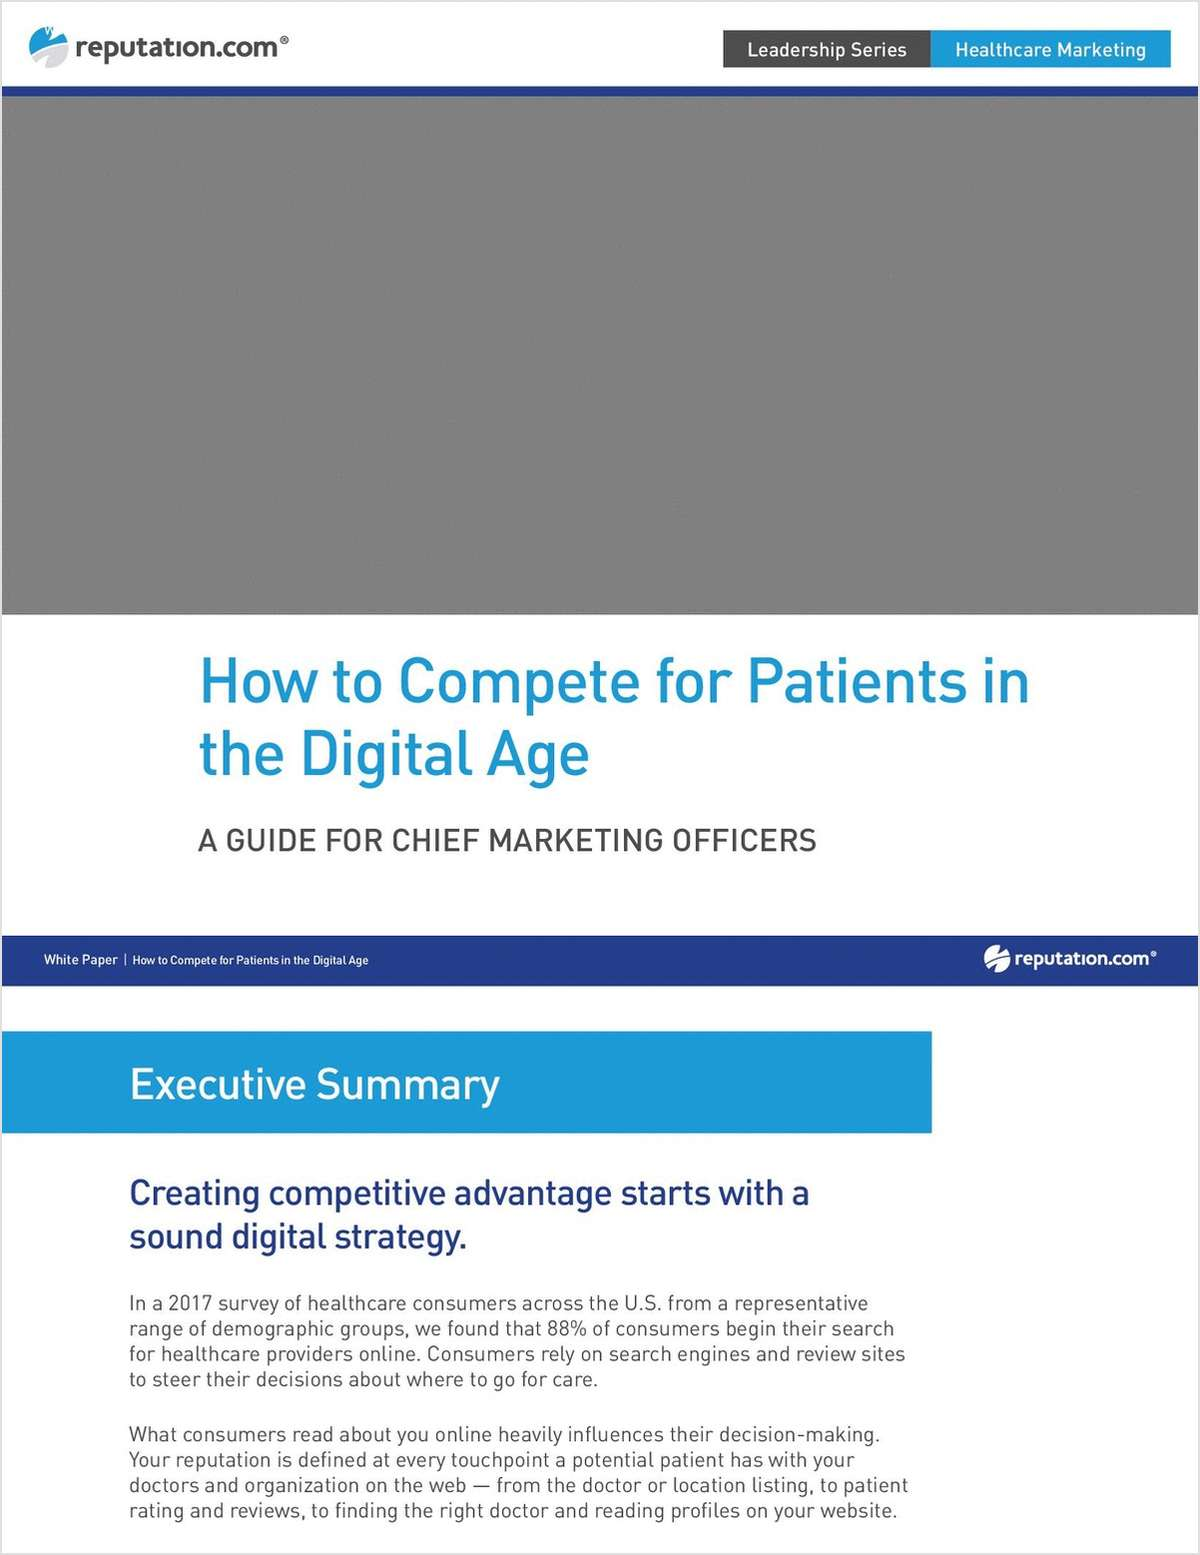 How to Compete for Patients in the Digital Age